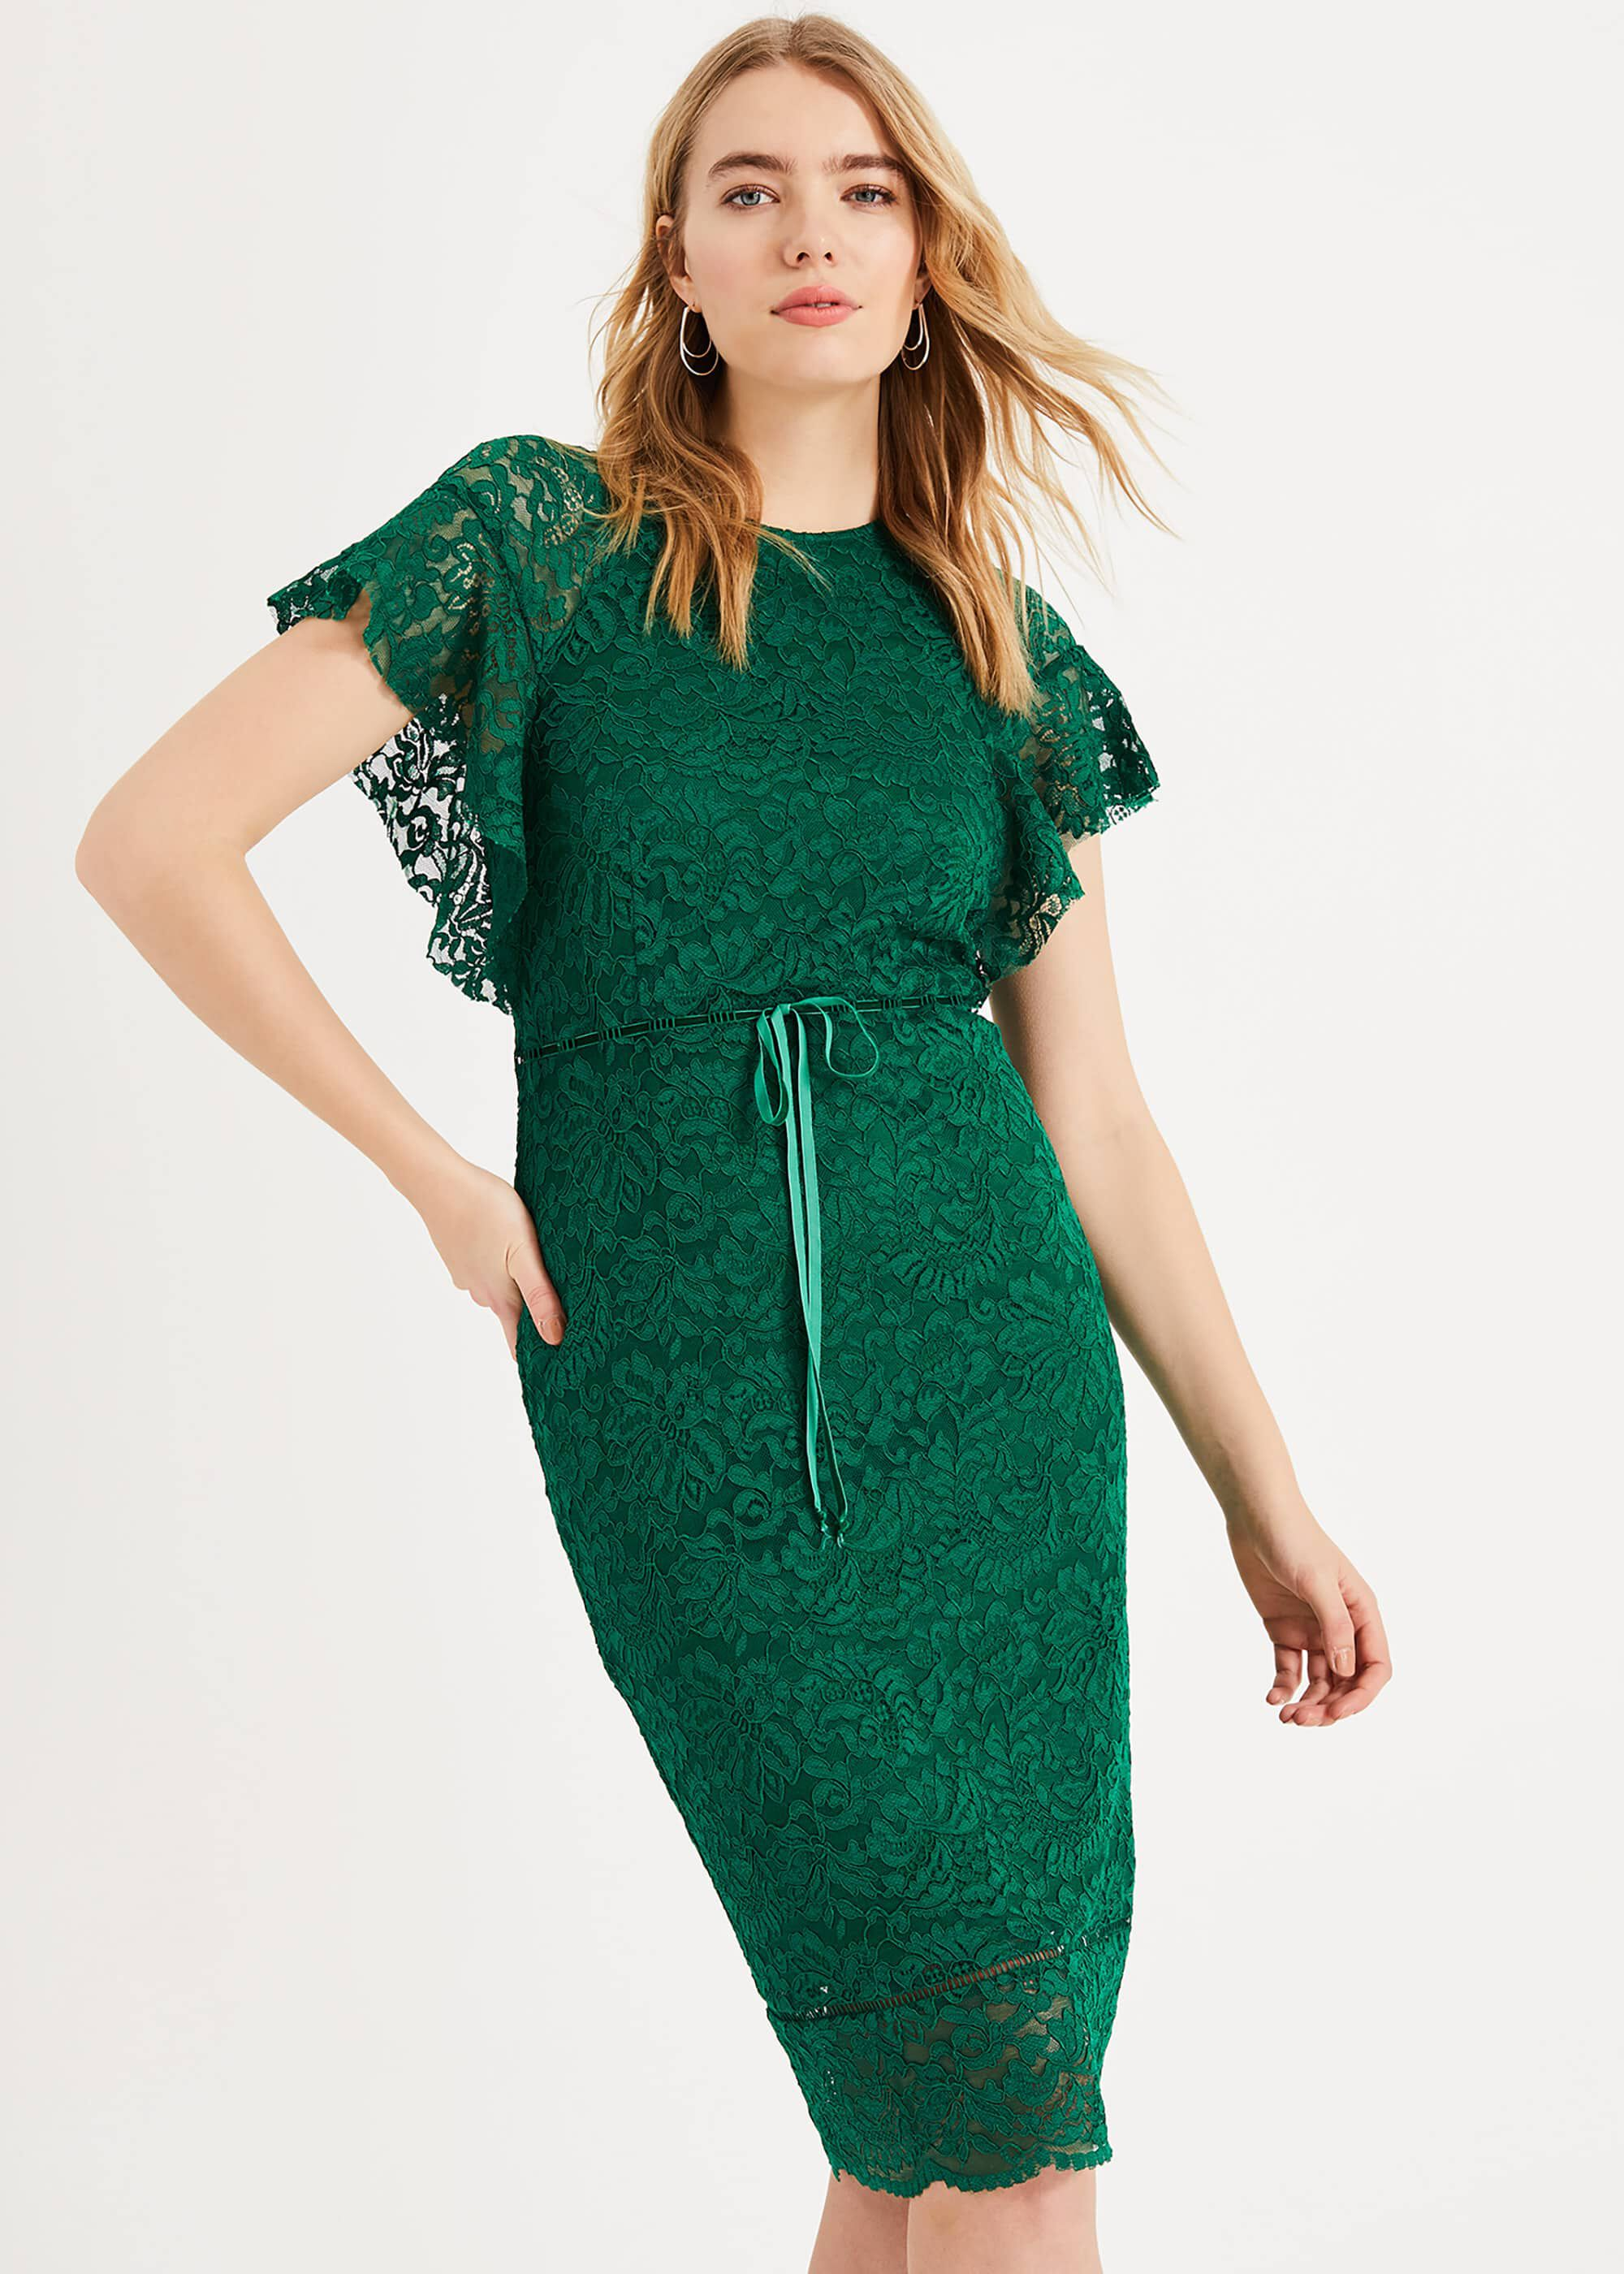 Phase Eight Ninette Frill Sleeve Lace Dress, Green, Shift, Occasion Dress